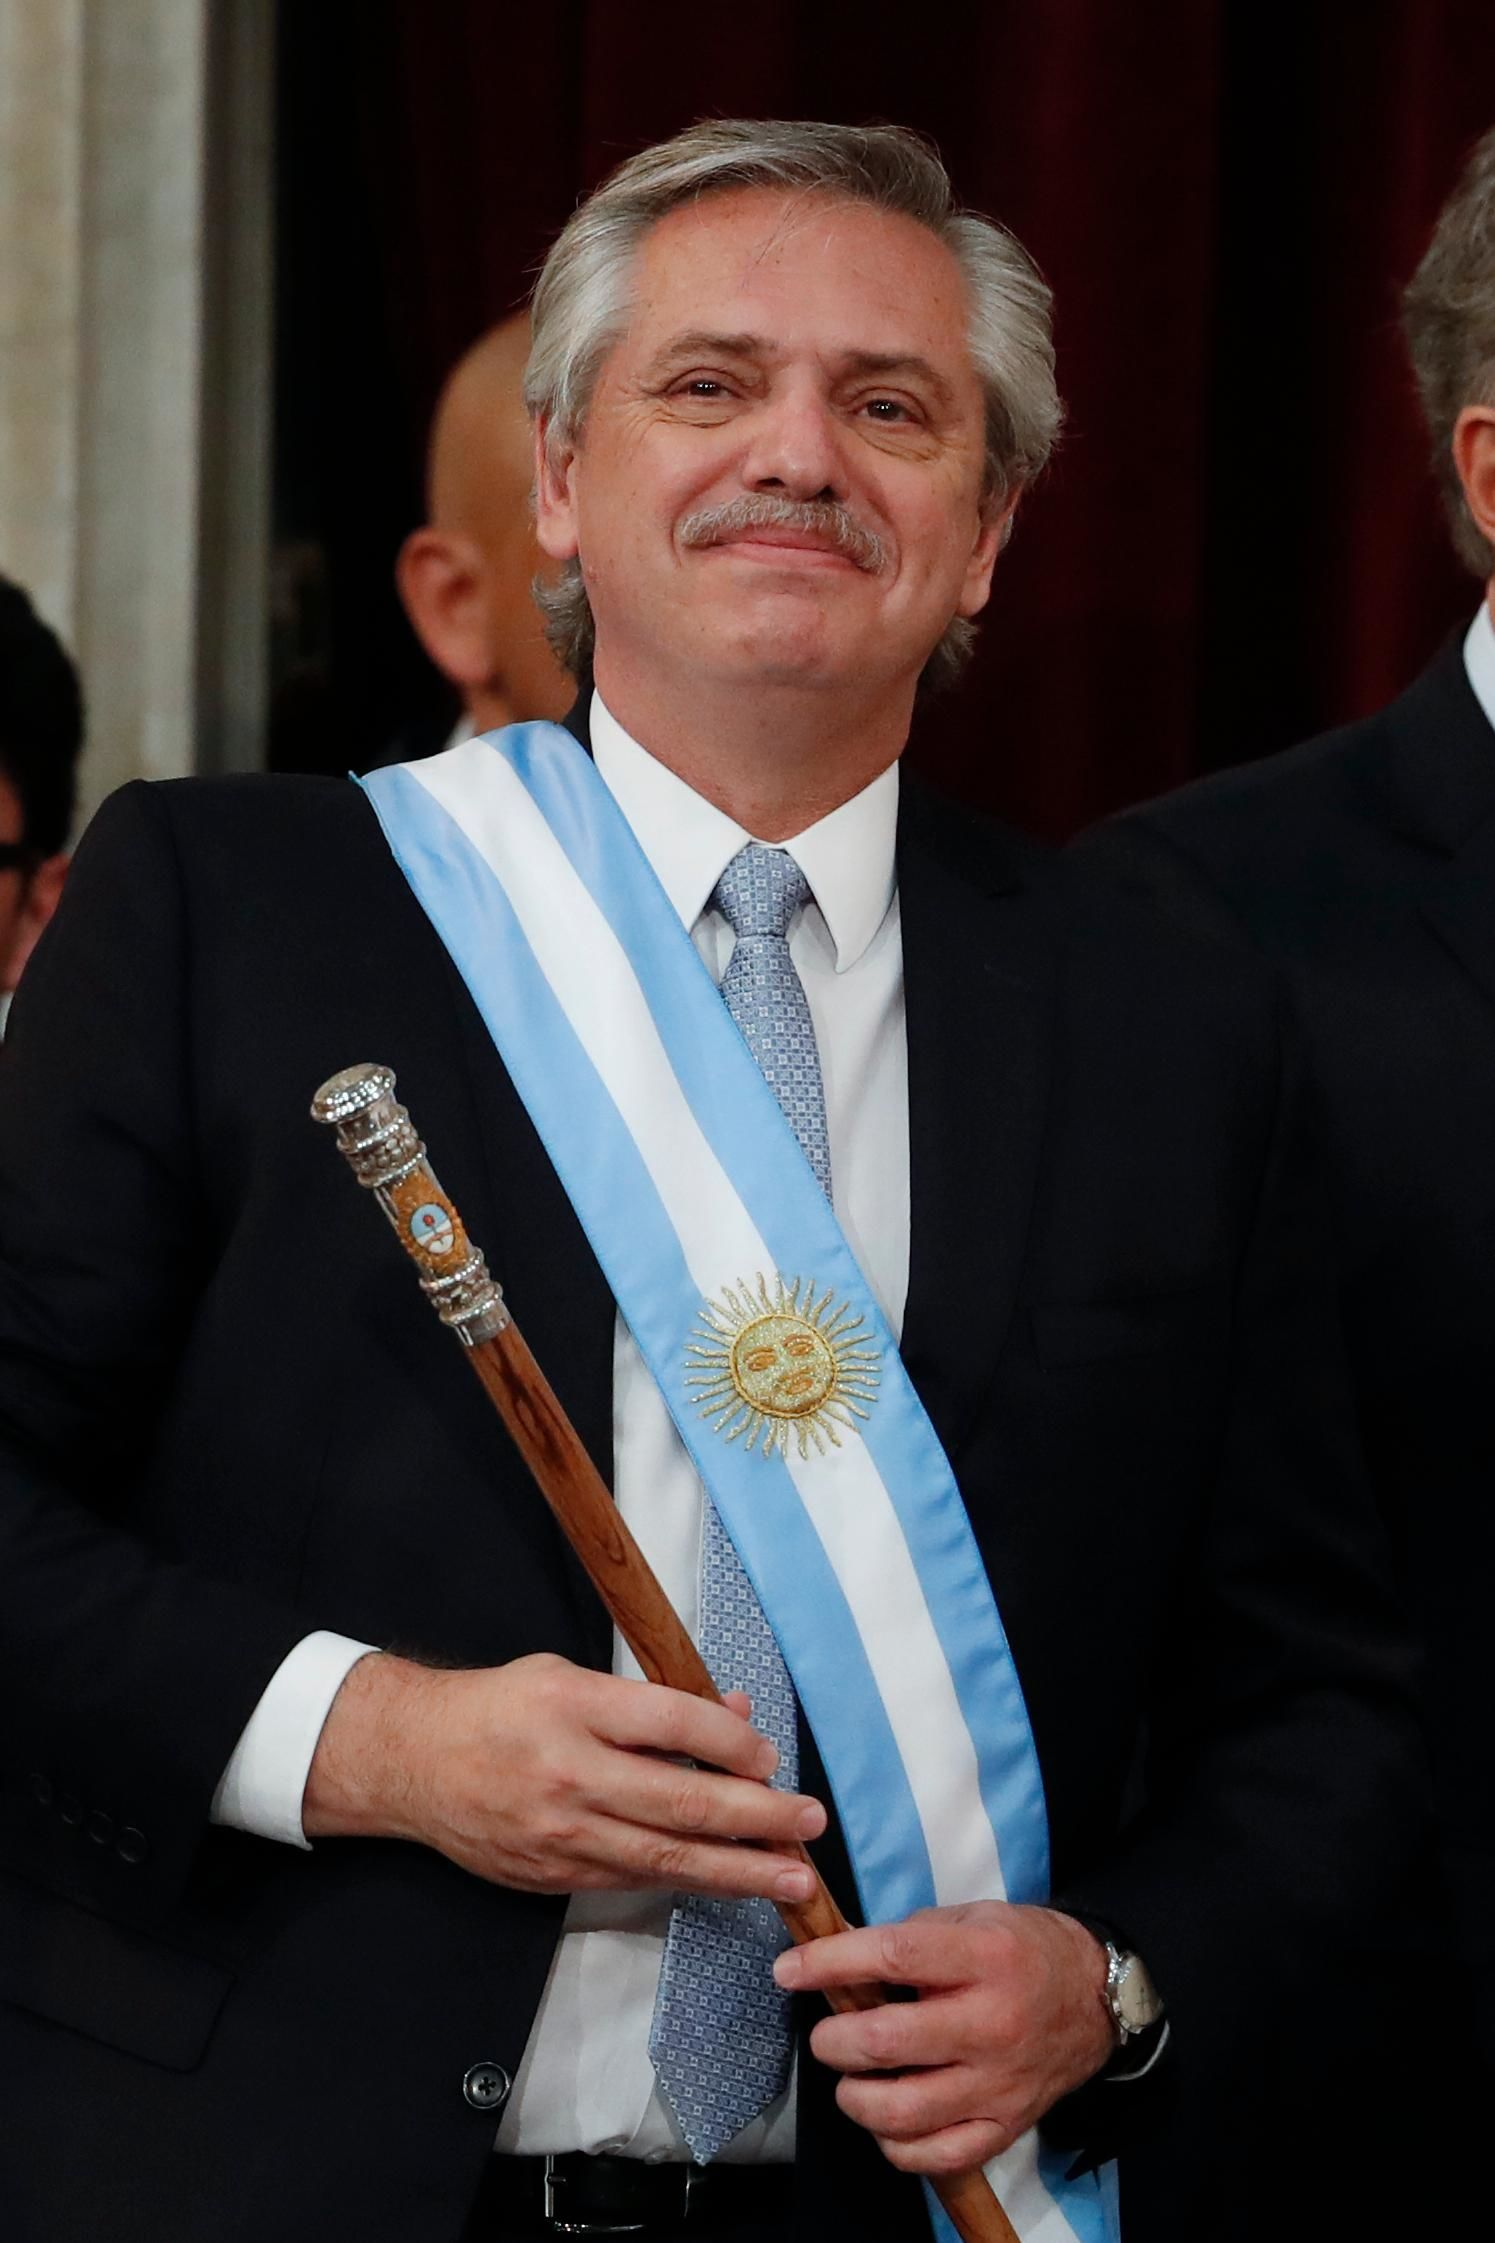 Argentina's new President Alberto Fernandez smiles after taking the oath of office at the Congress in Buenos Aires, Argentina, Tuesday, Dec. 10, 2019. (AP Photo/Natacha Pisarenko)